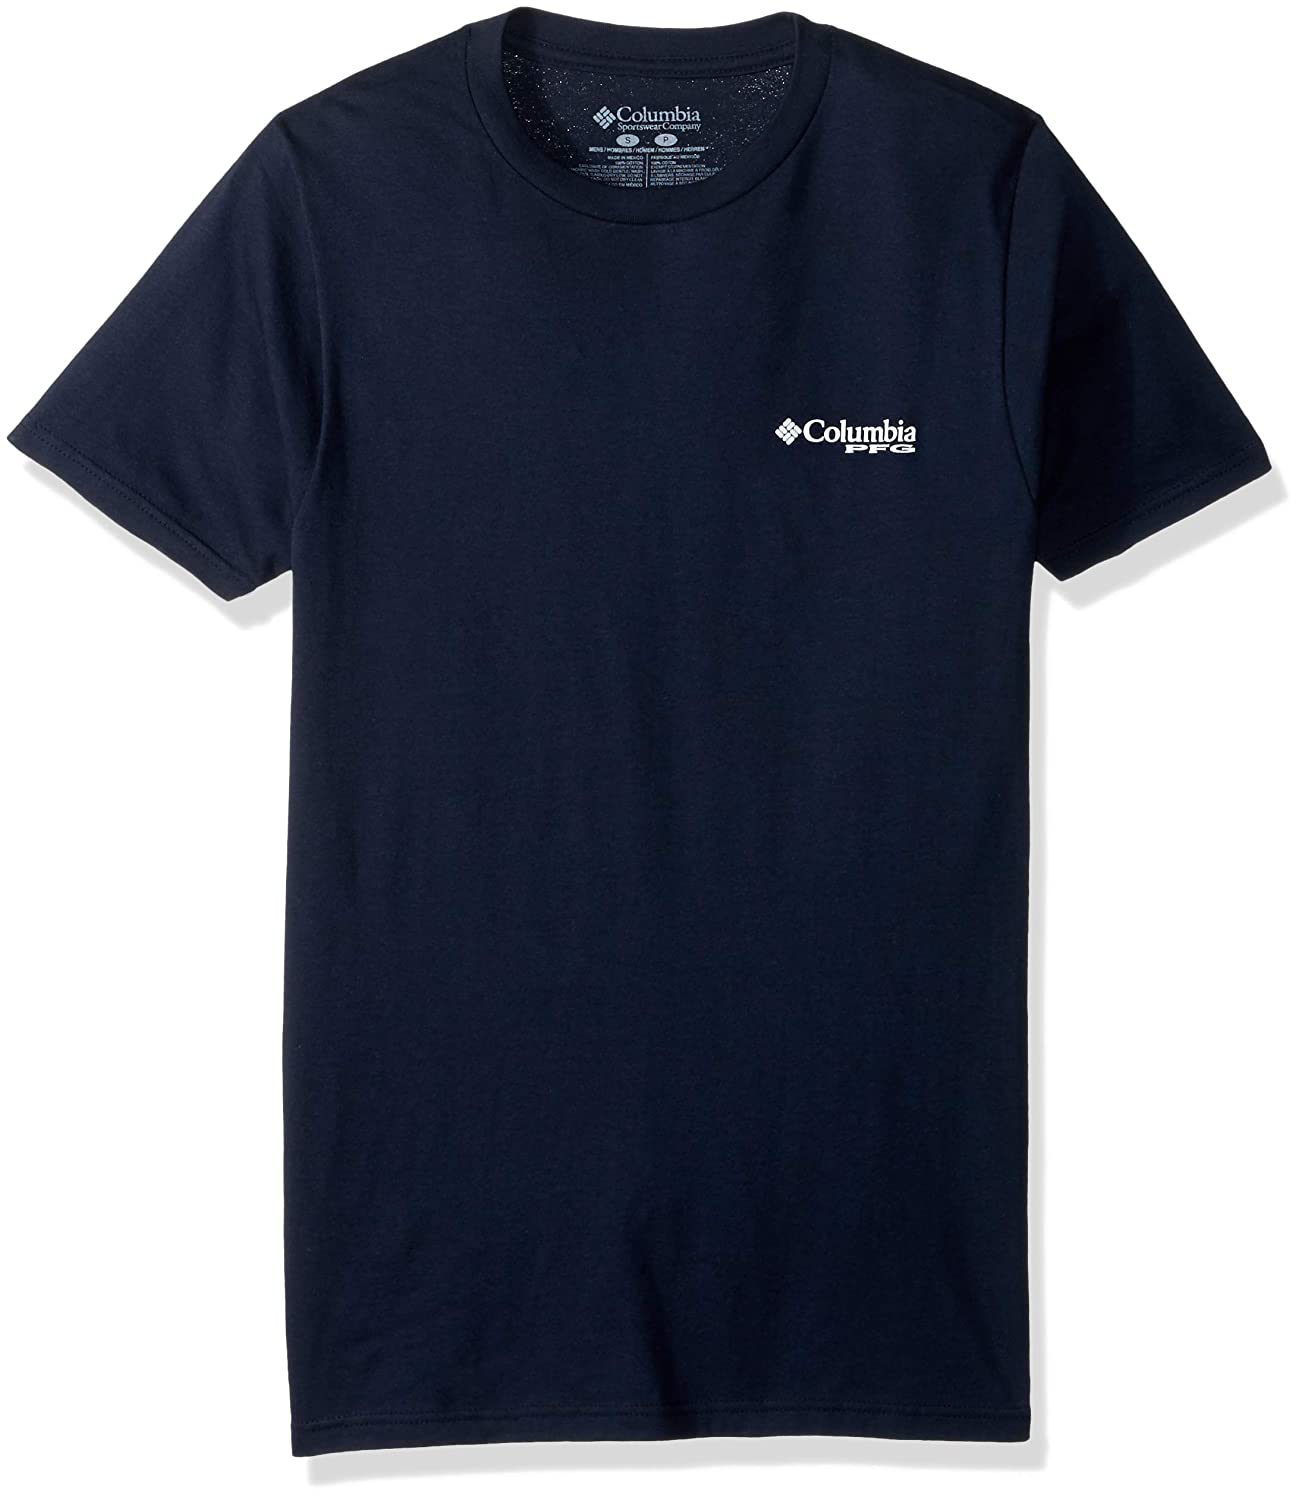 758331f920f Amazon.com: Columbia Men's PFG Graphic T-Shirt: Clothing